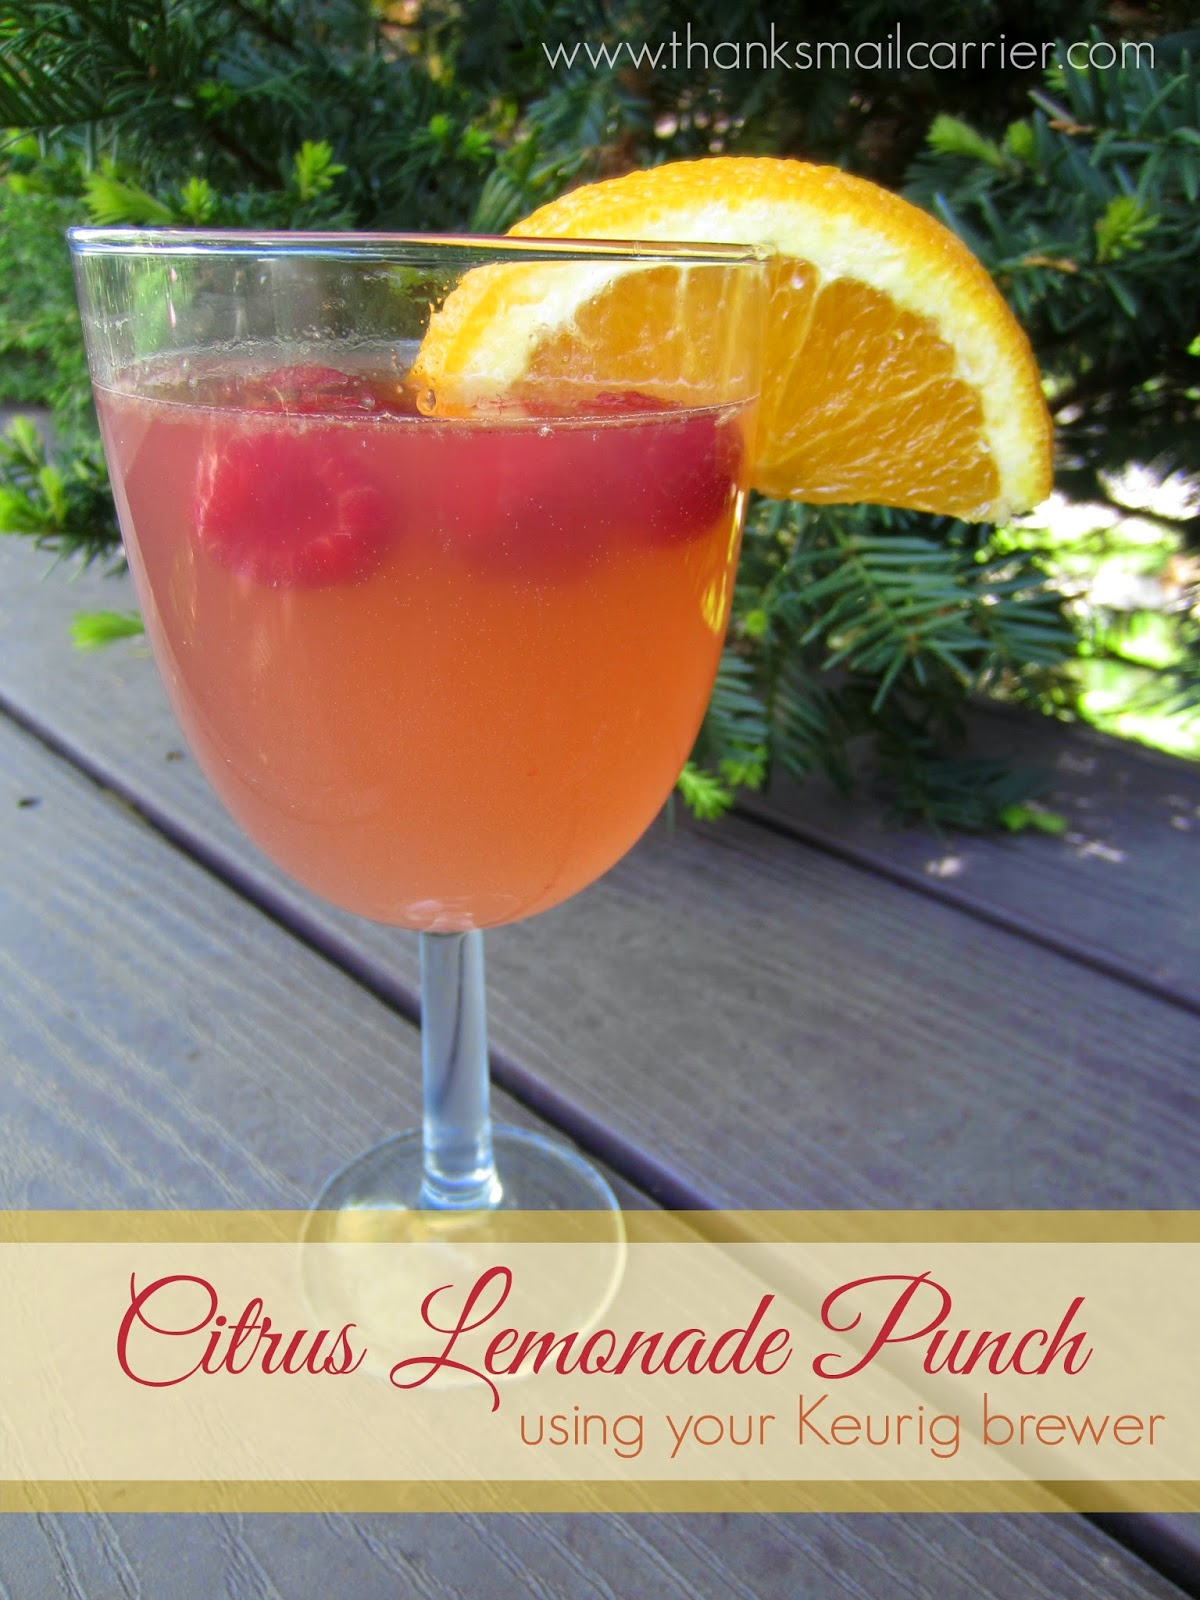 Citrus Lemonade Punch